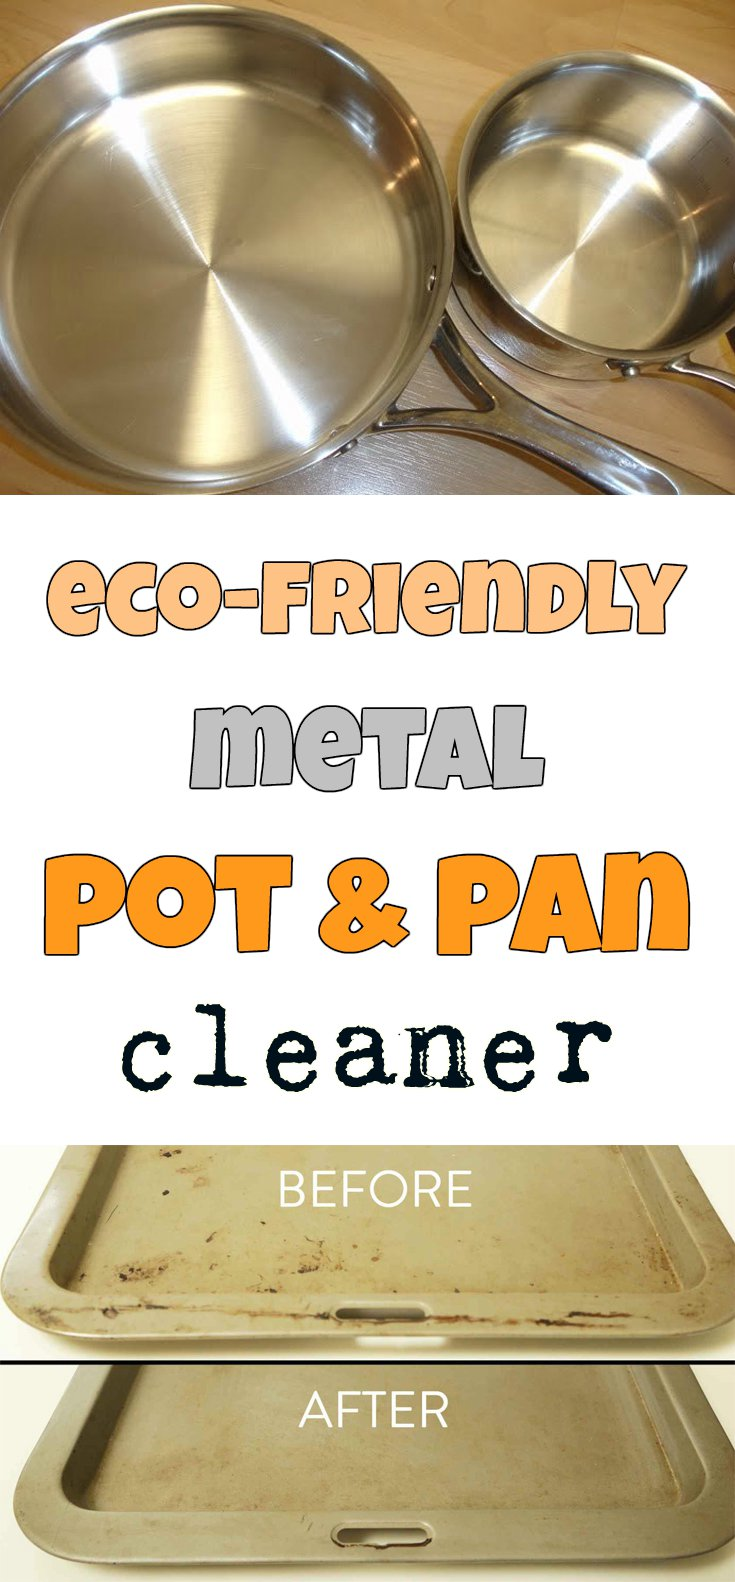 Eco Friendly Metal Pot And Pan Cleaner